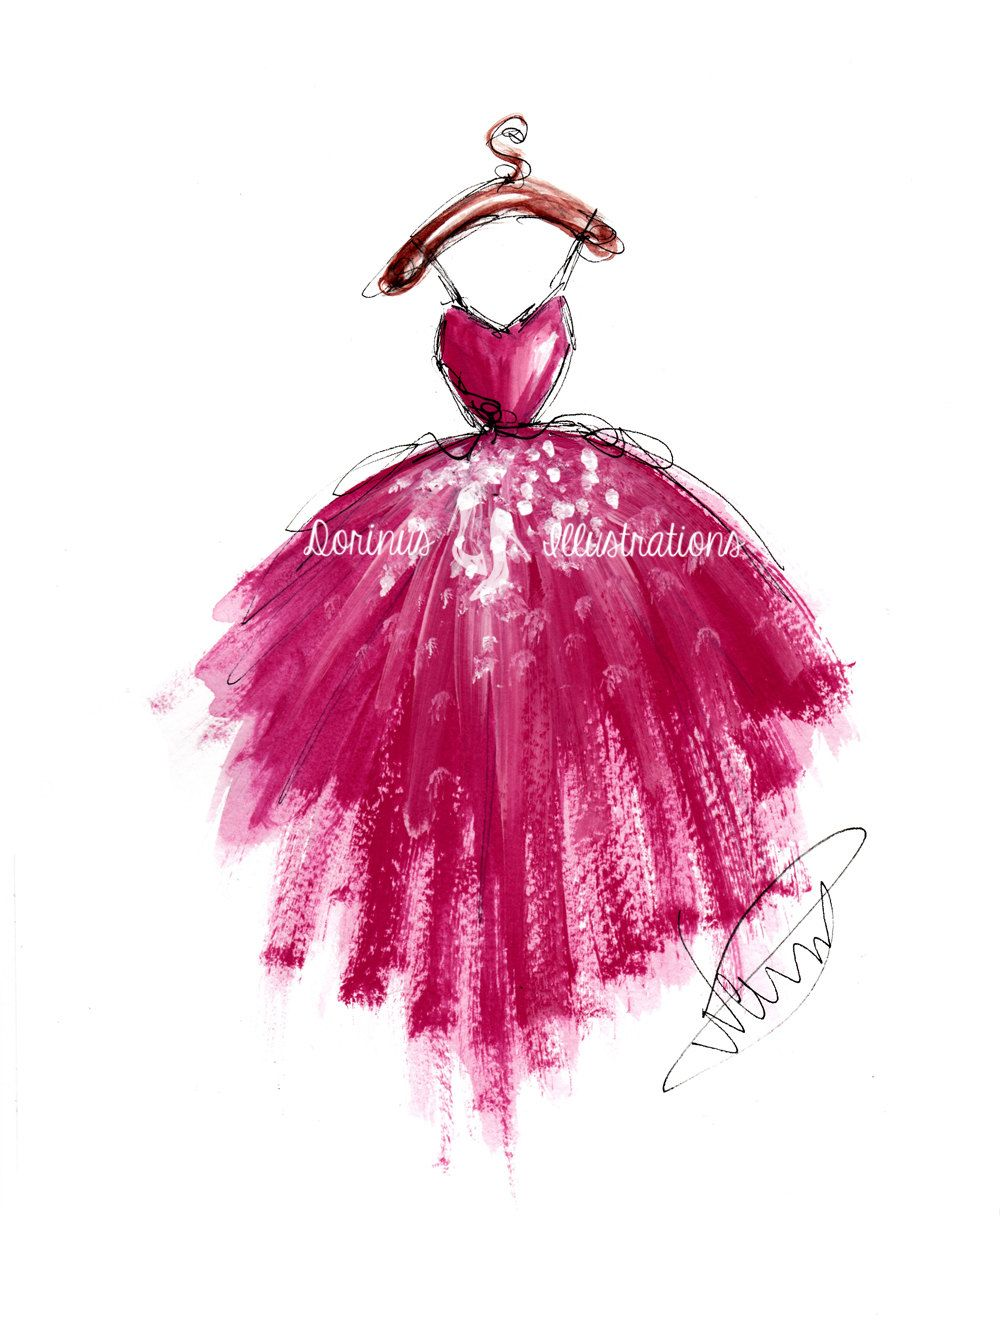 Image result for drawings women gowns | Drawings | Pinterest